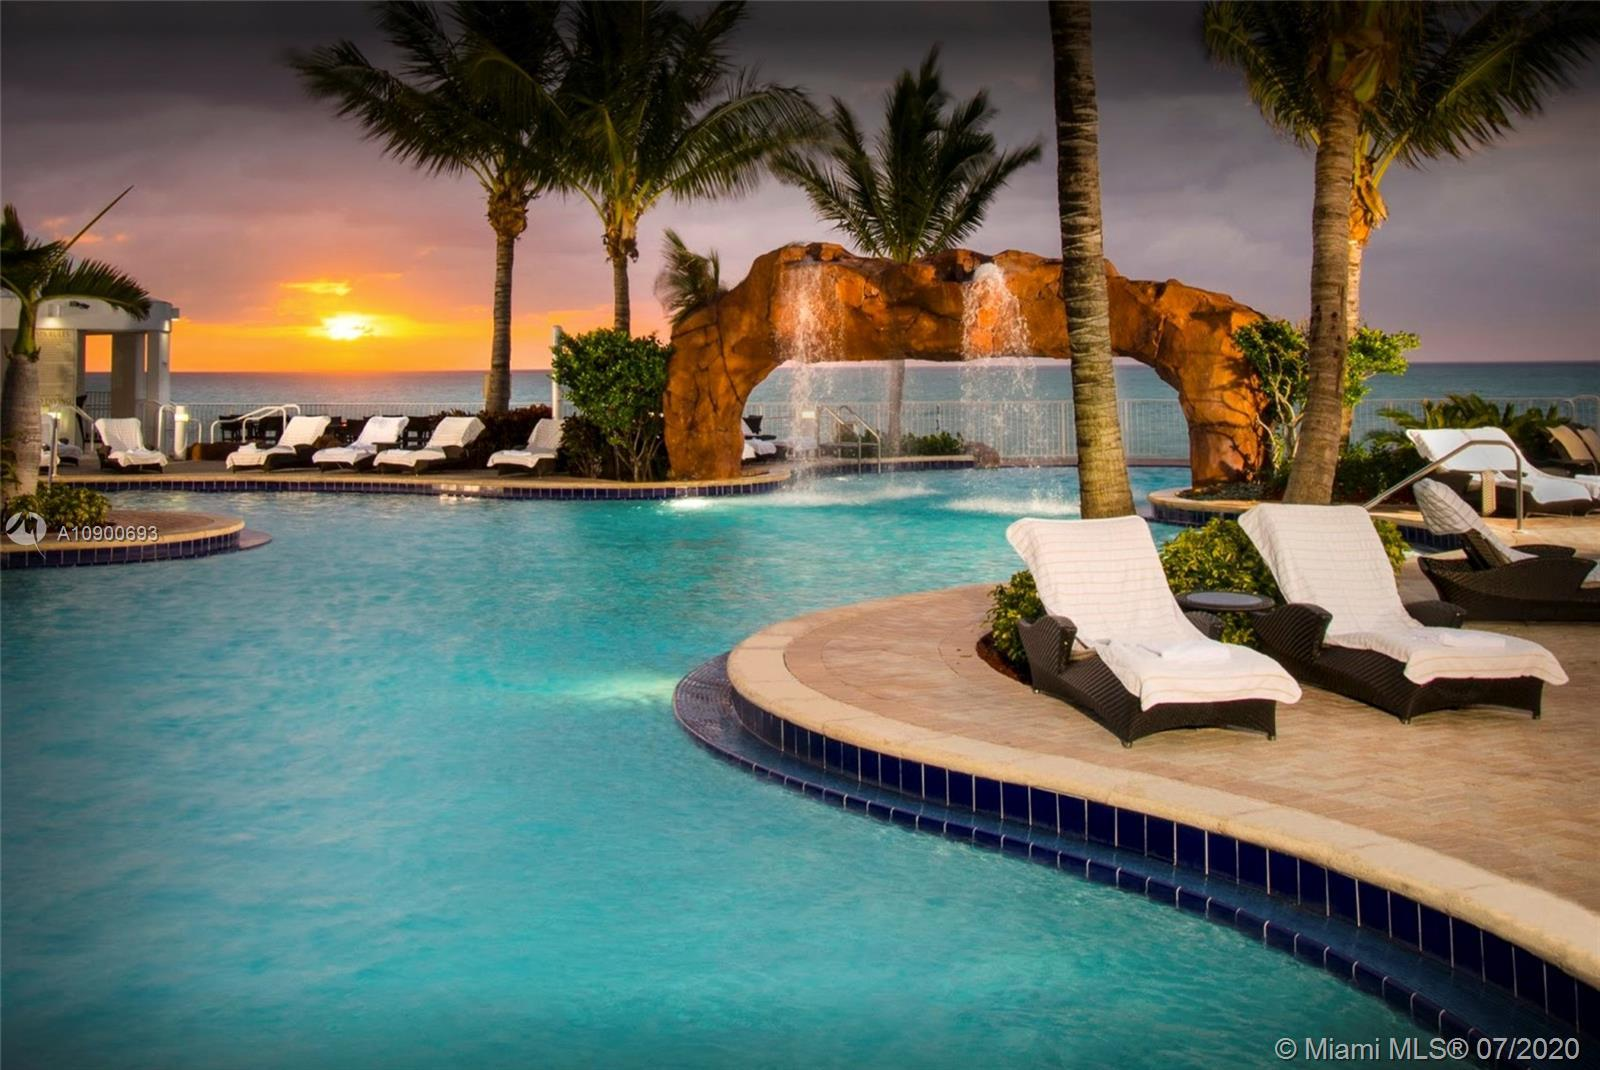 Trump International Beach Resort Miami, an upscale, family-friendly enclave on Miami's Sunny Isles B